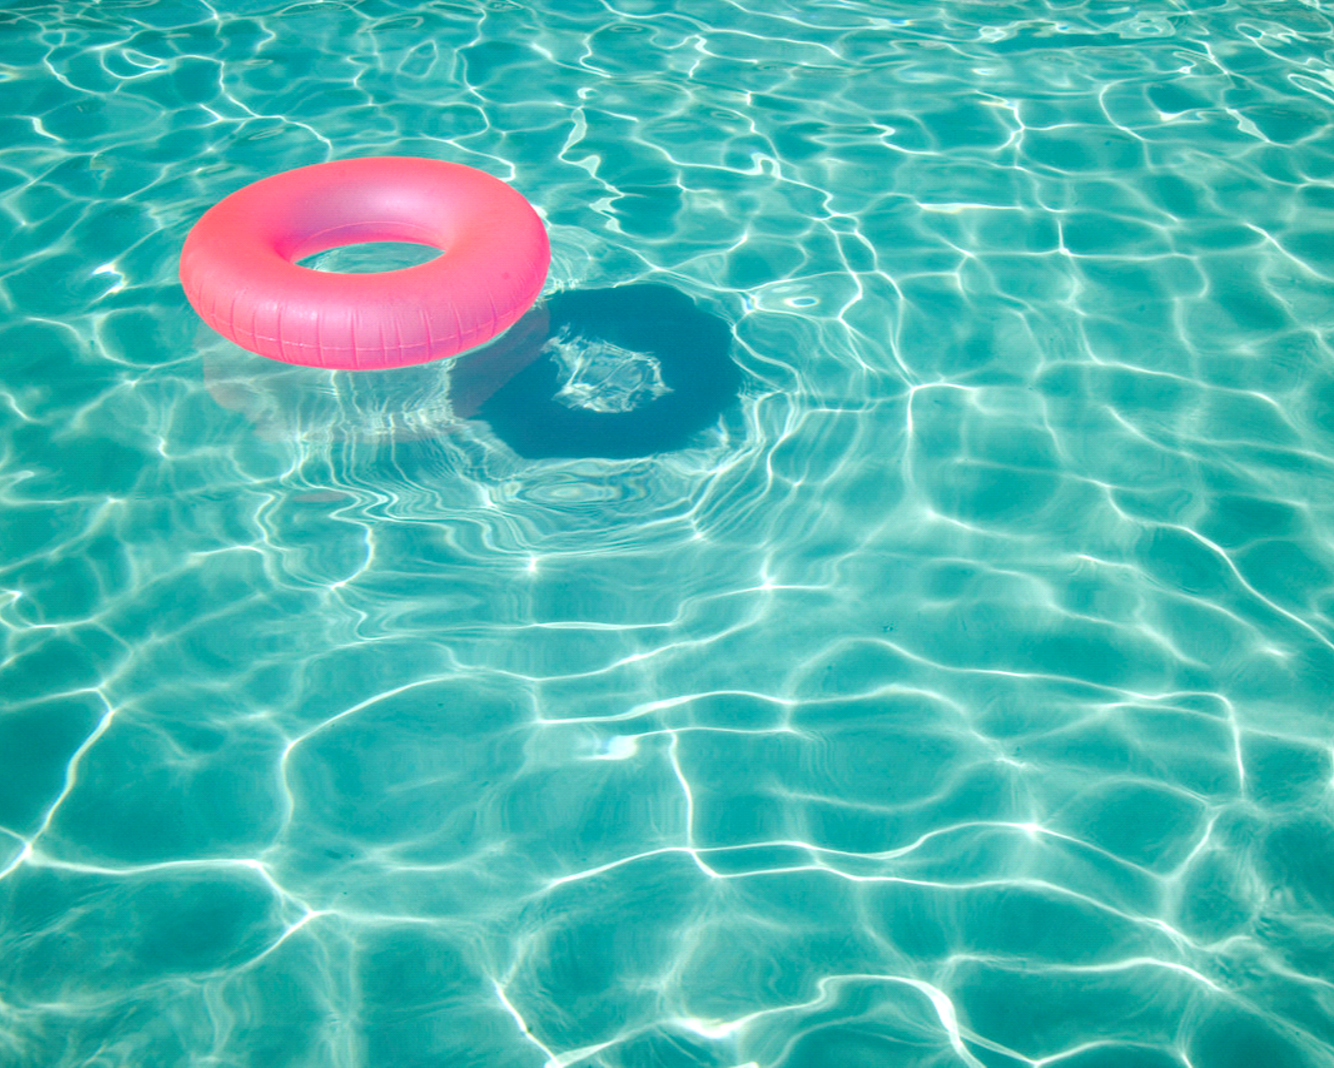 Pink inflatable tube floating in pool water